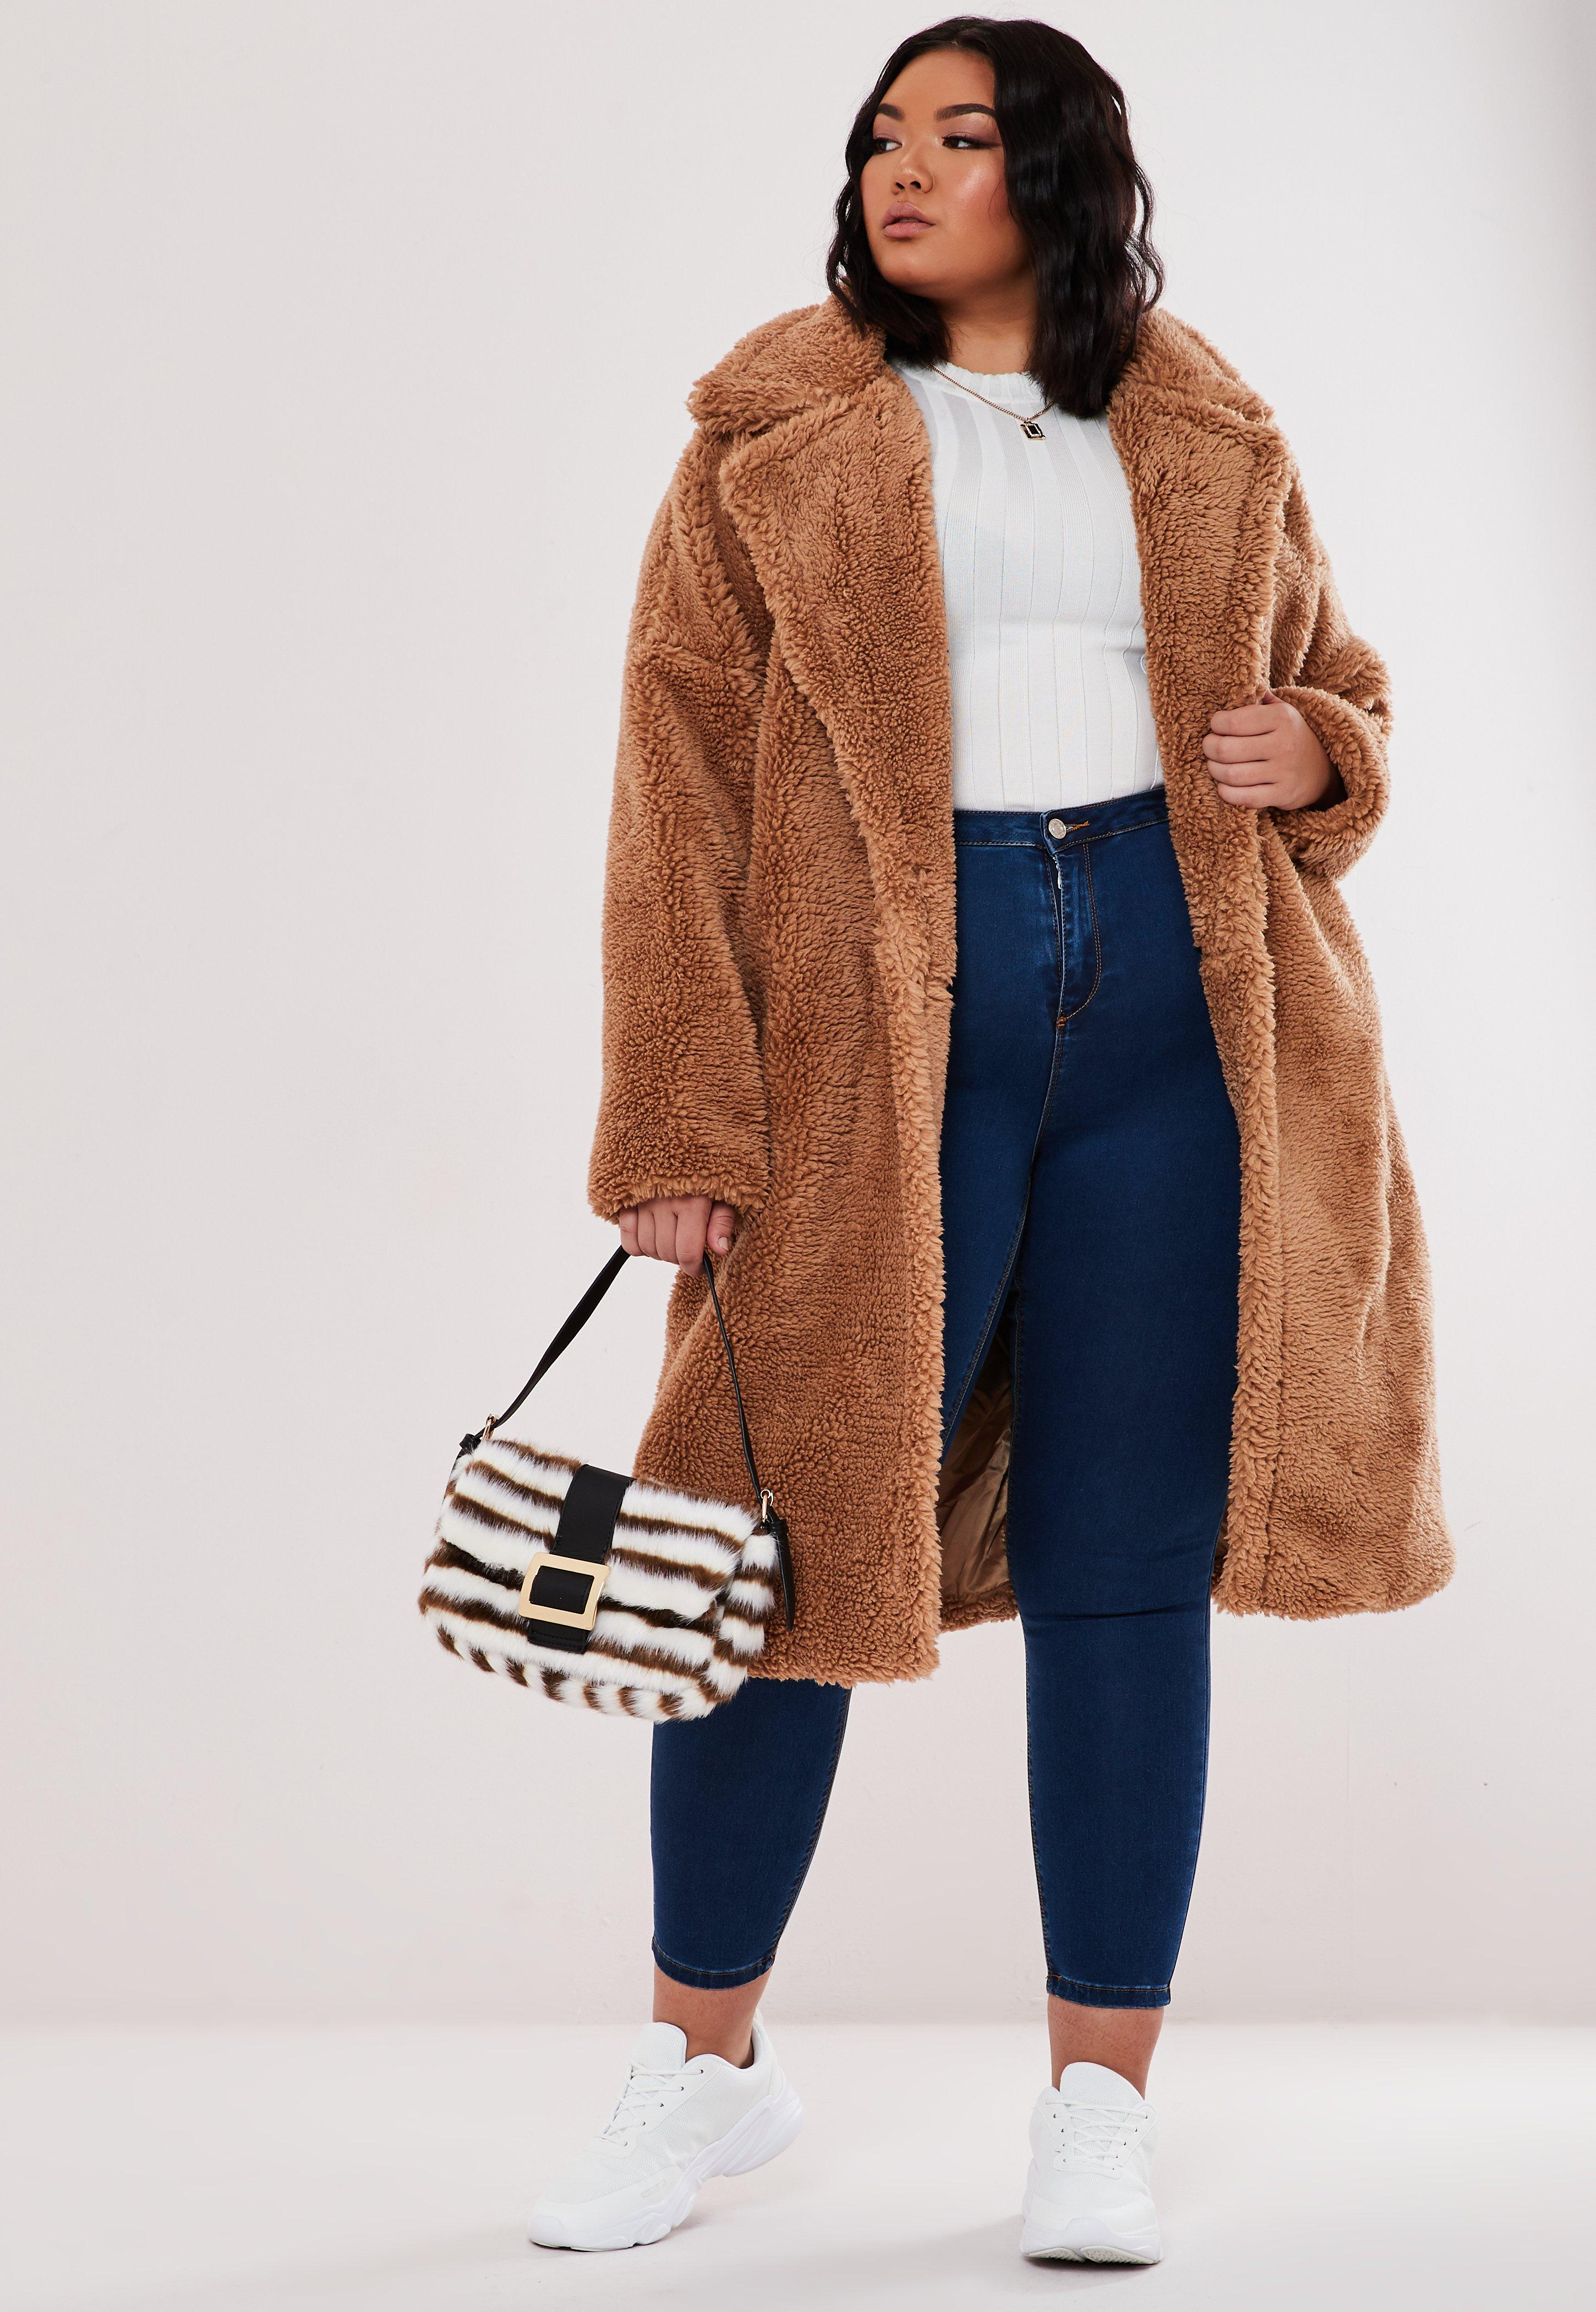 free shipping pick up differently Coats & Jackets | Women's Coats Online UK - Missguided